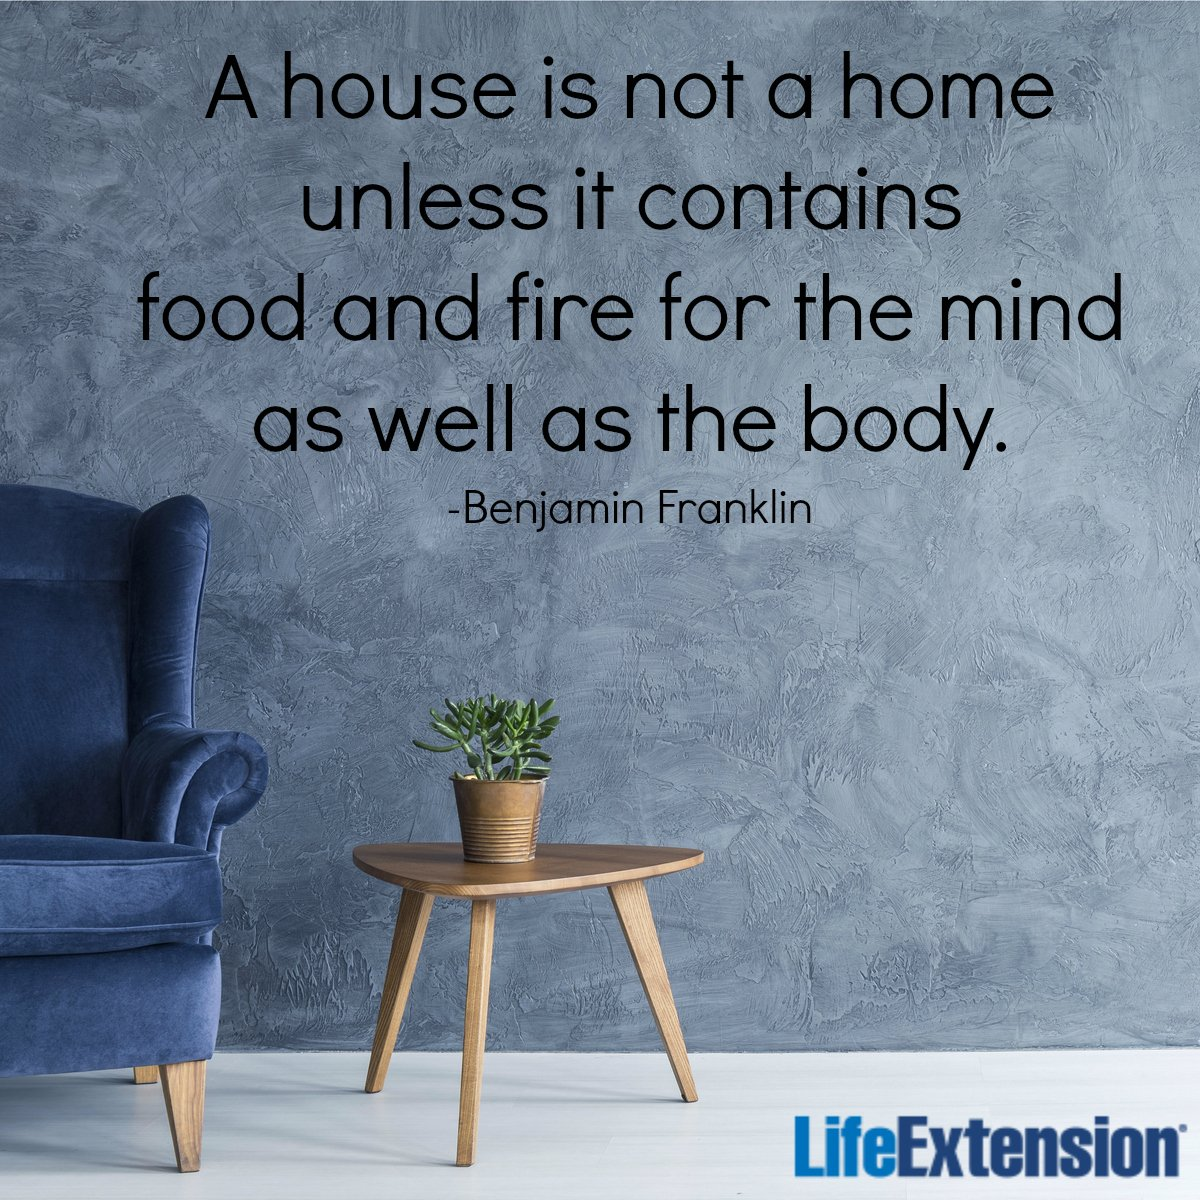 How would you interpret this quote? #wellness #health